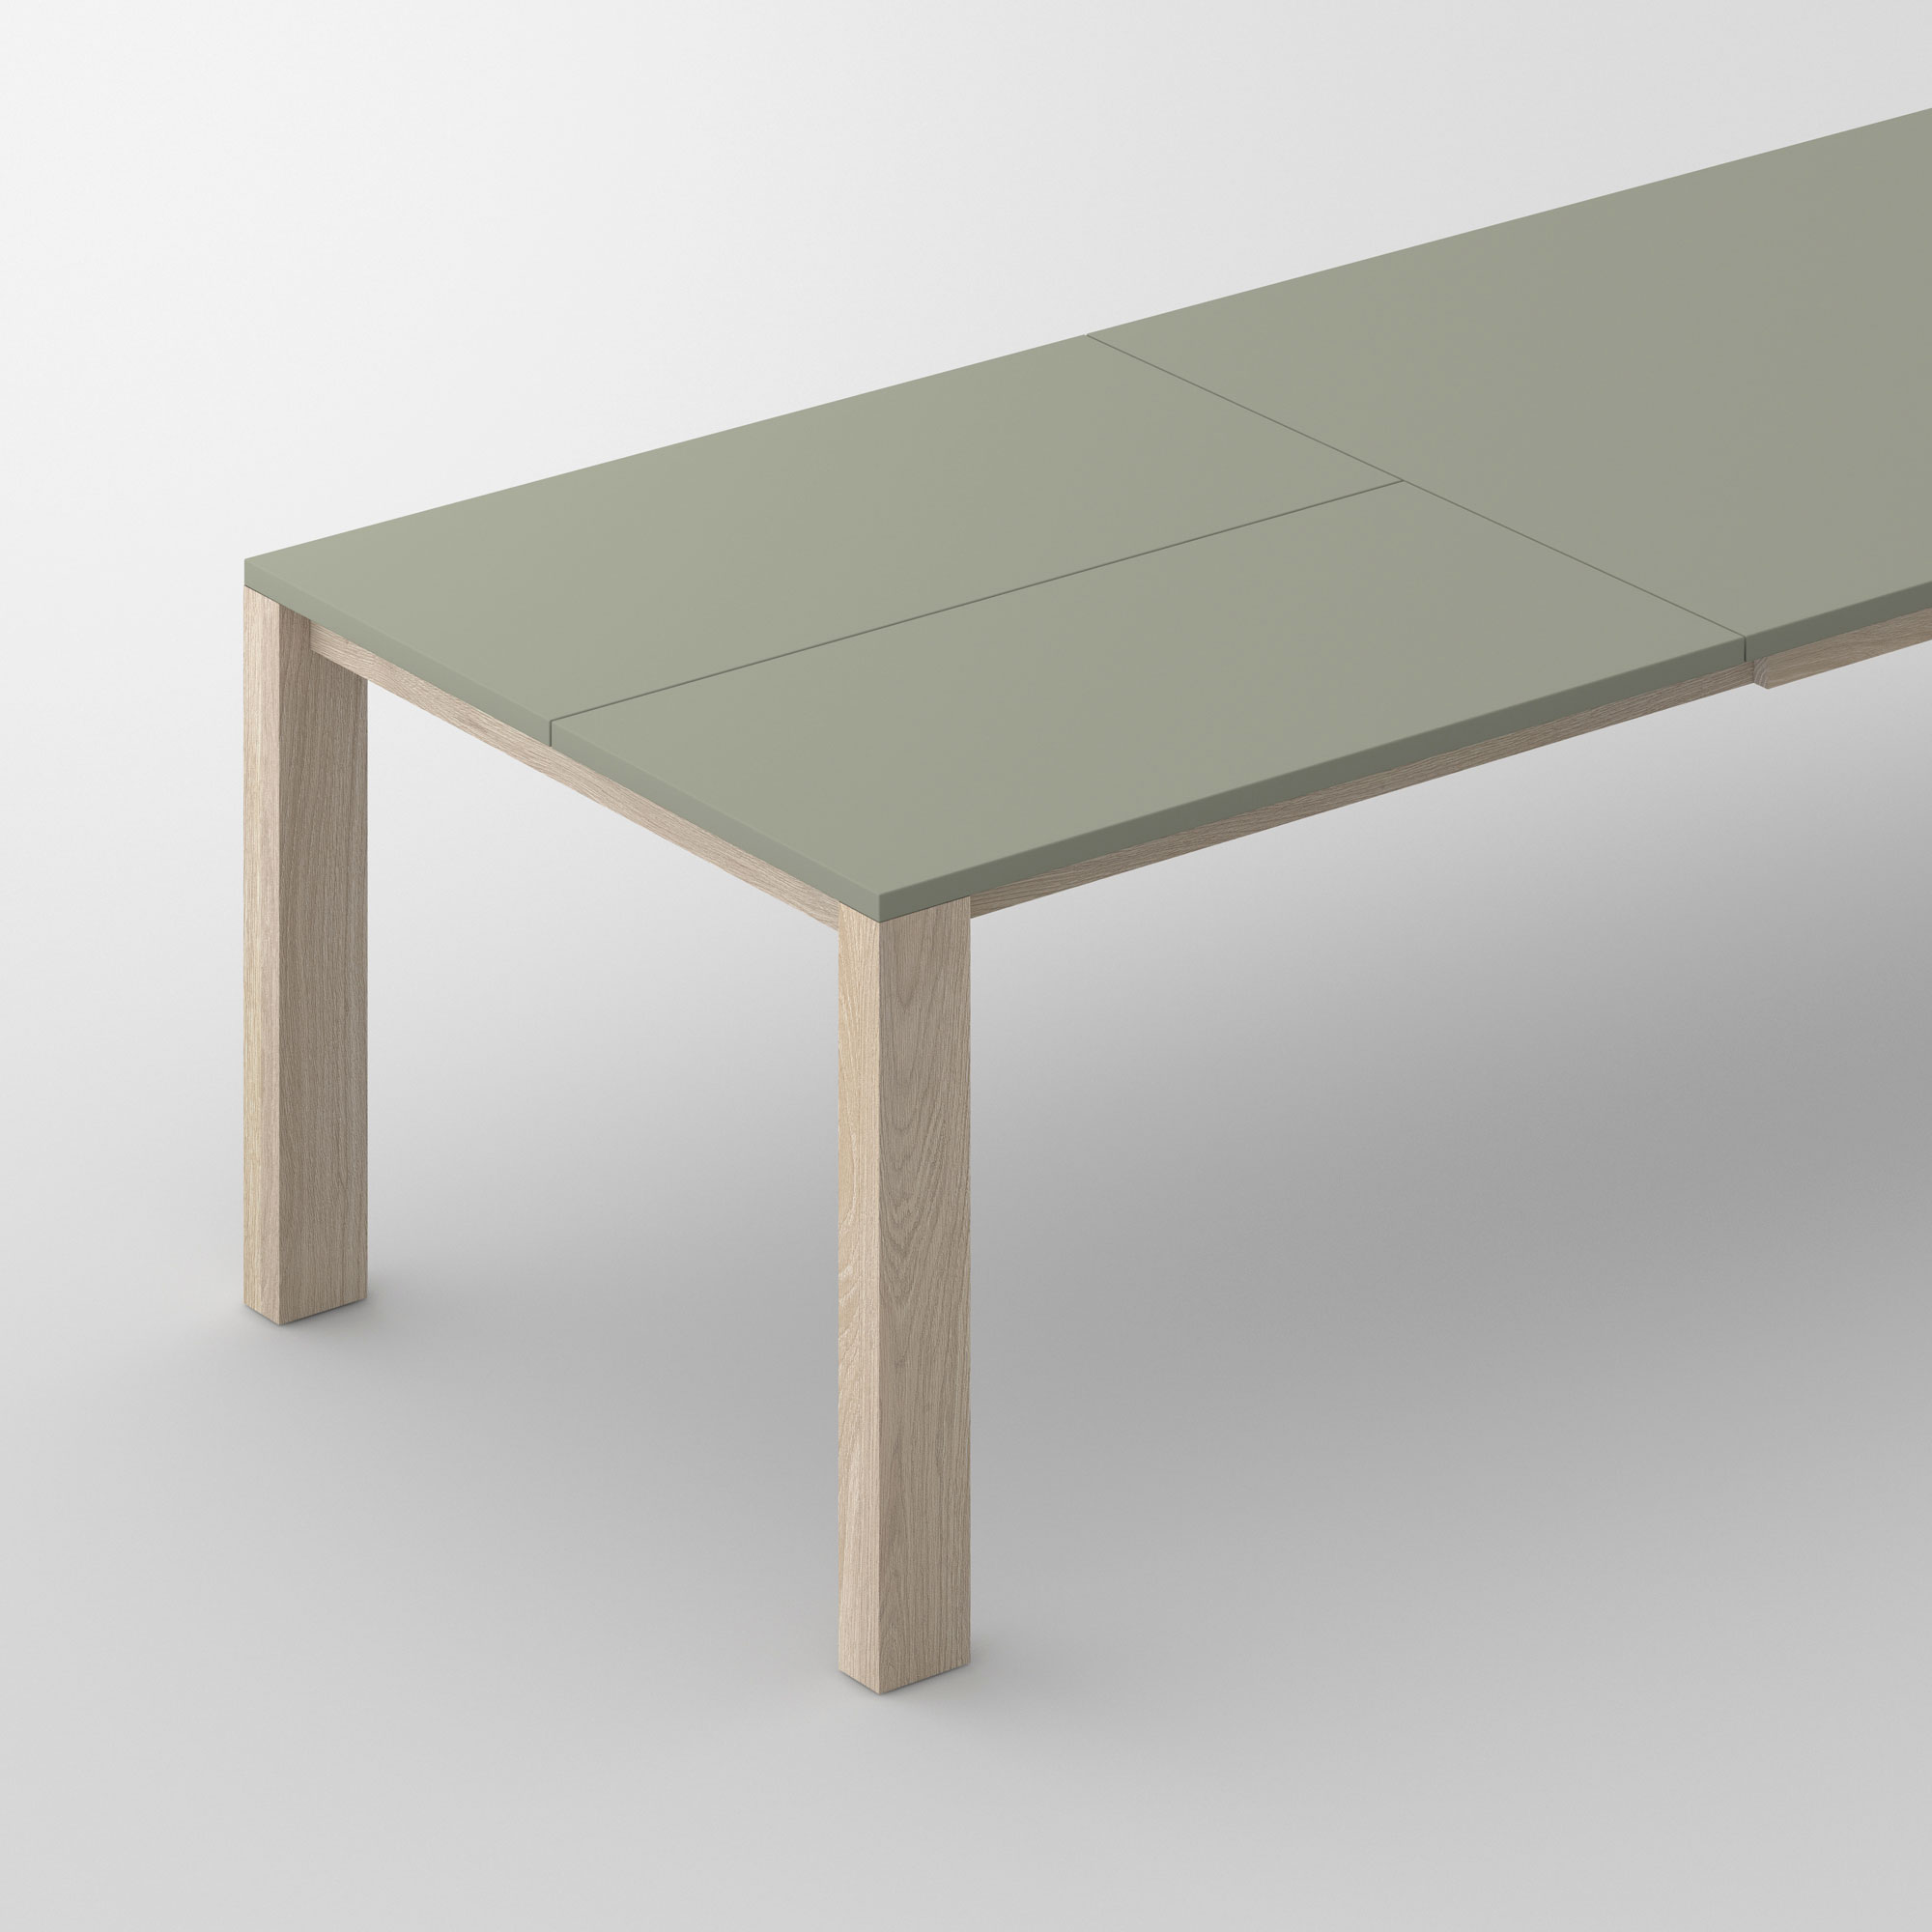 Extensible Linoleum Wood Table VARIUS BUTTERFLY LINO cam2 custom made in solid wood by vitamin design